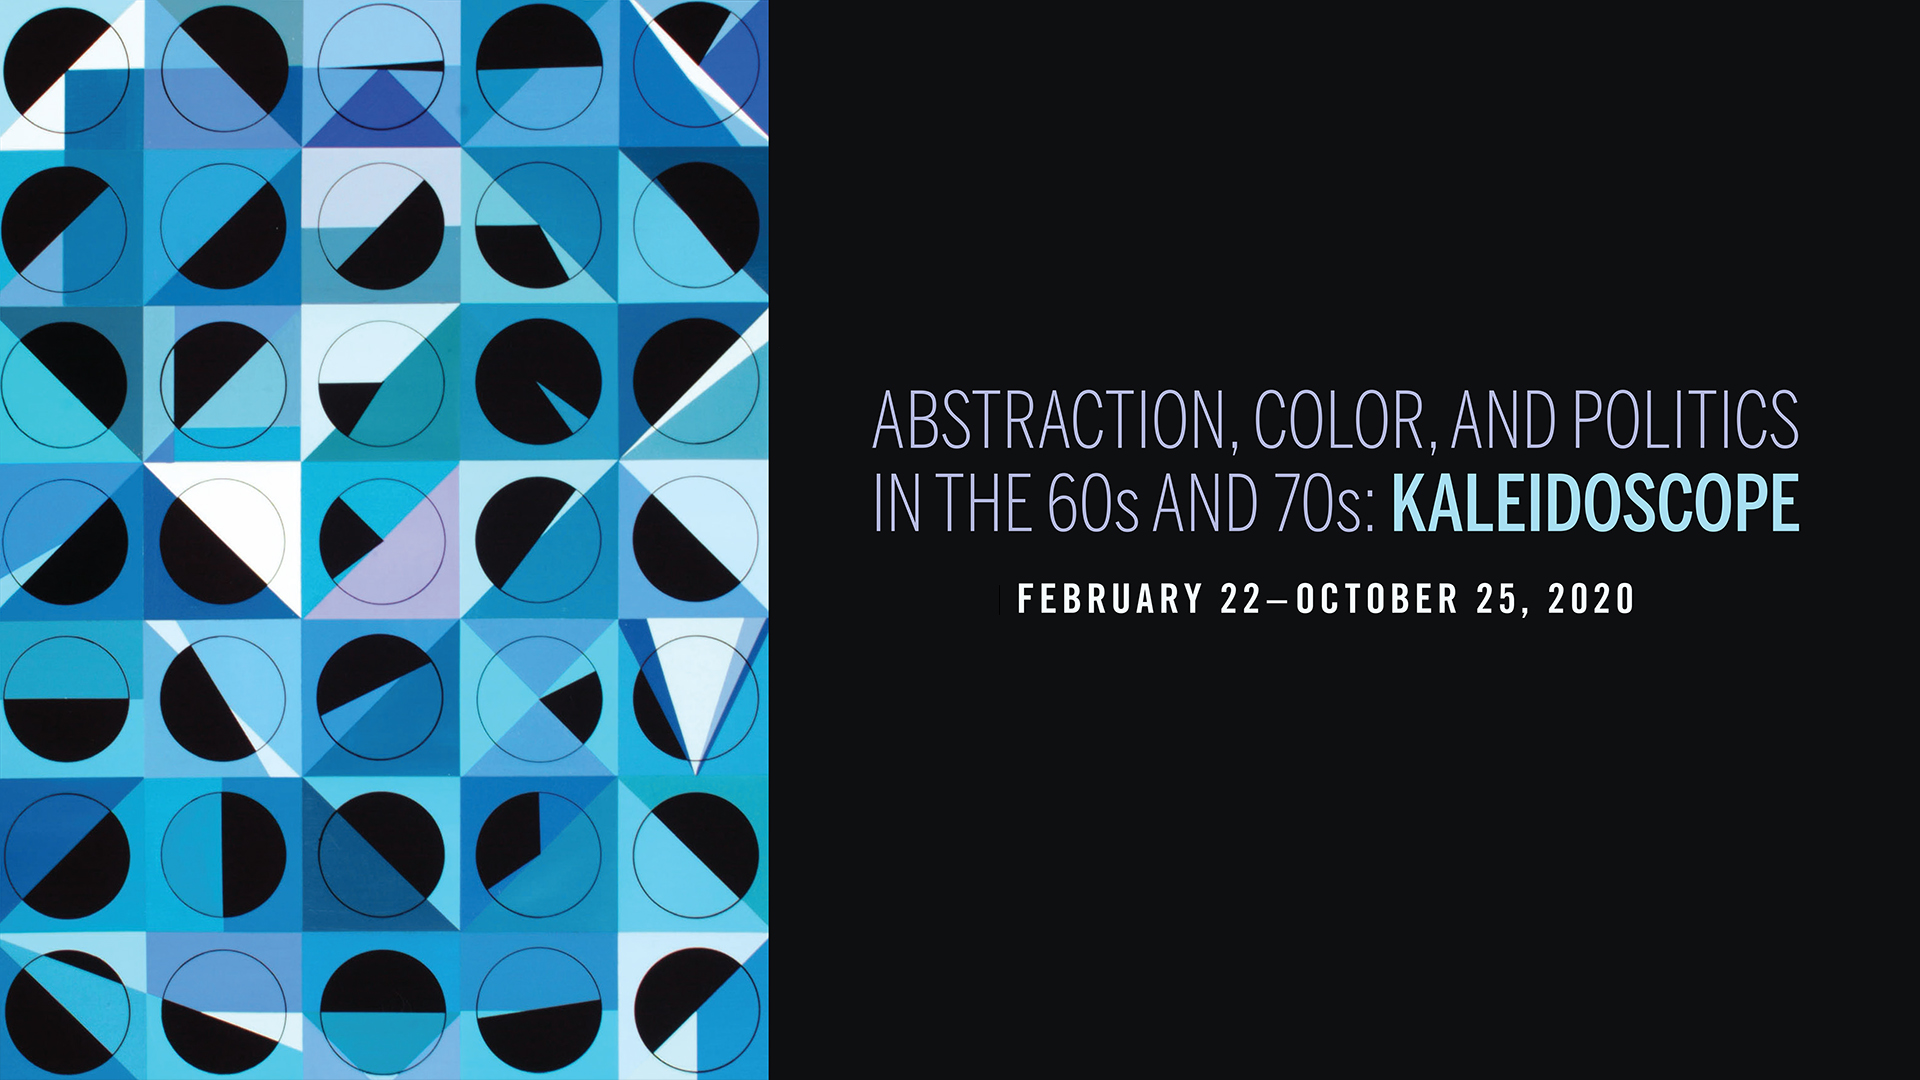 Abstraction, Color, and Politics in the 60s and 70s: Kaleidoscope. February 22–October 25, 2020